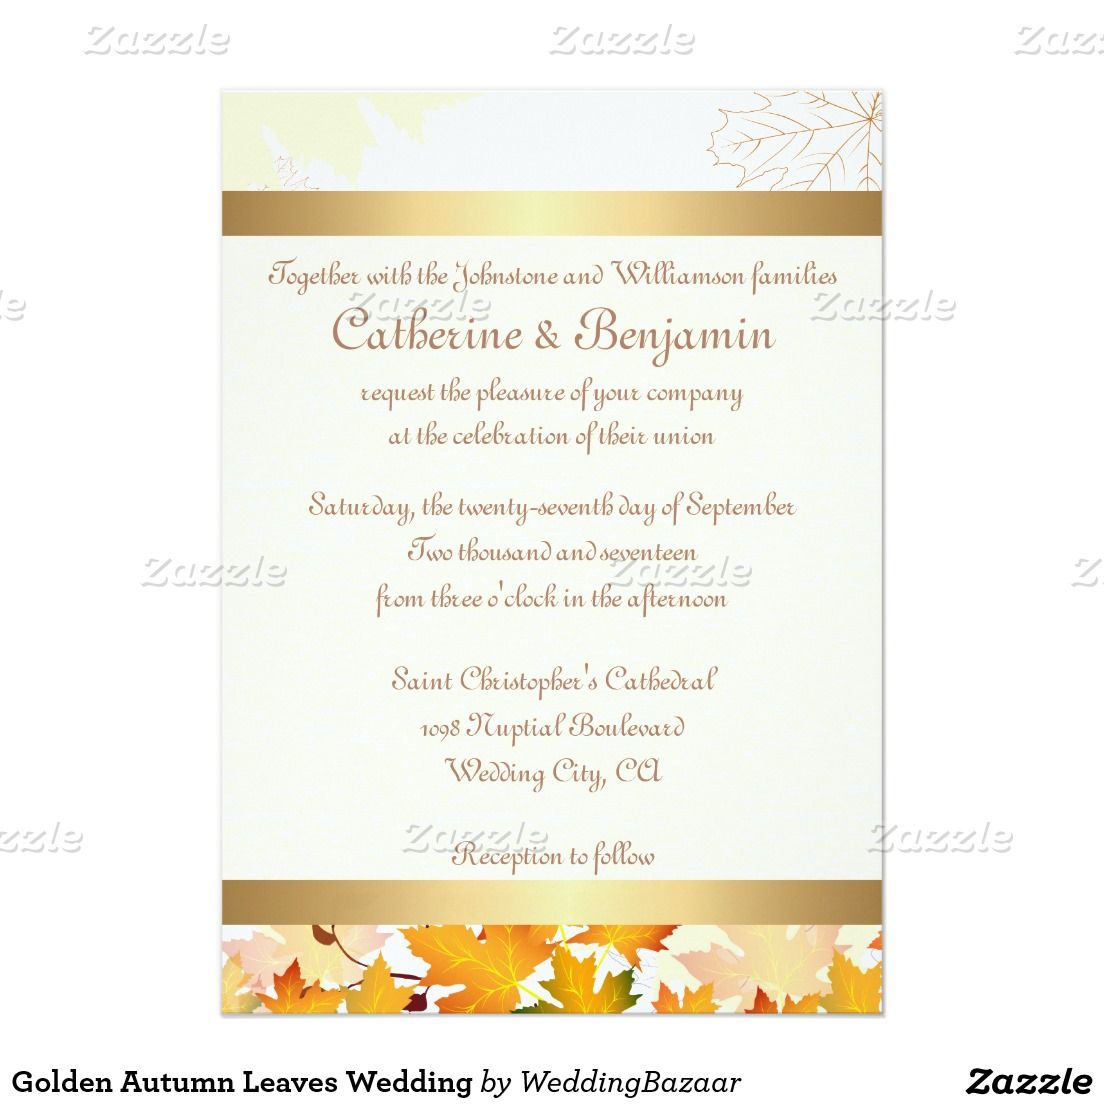 Golden Autumn Leaves Wedding Card Invitations Save The Dates